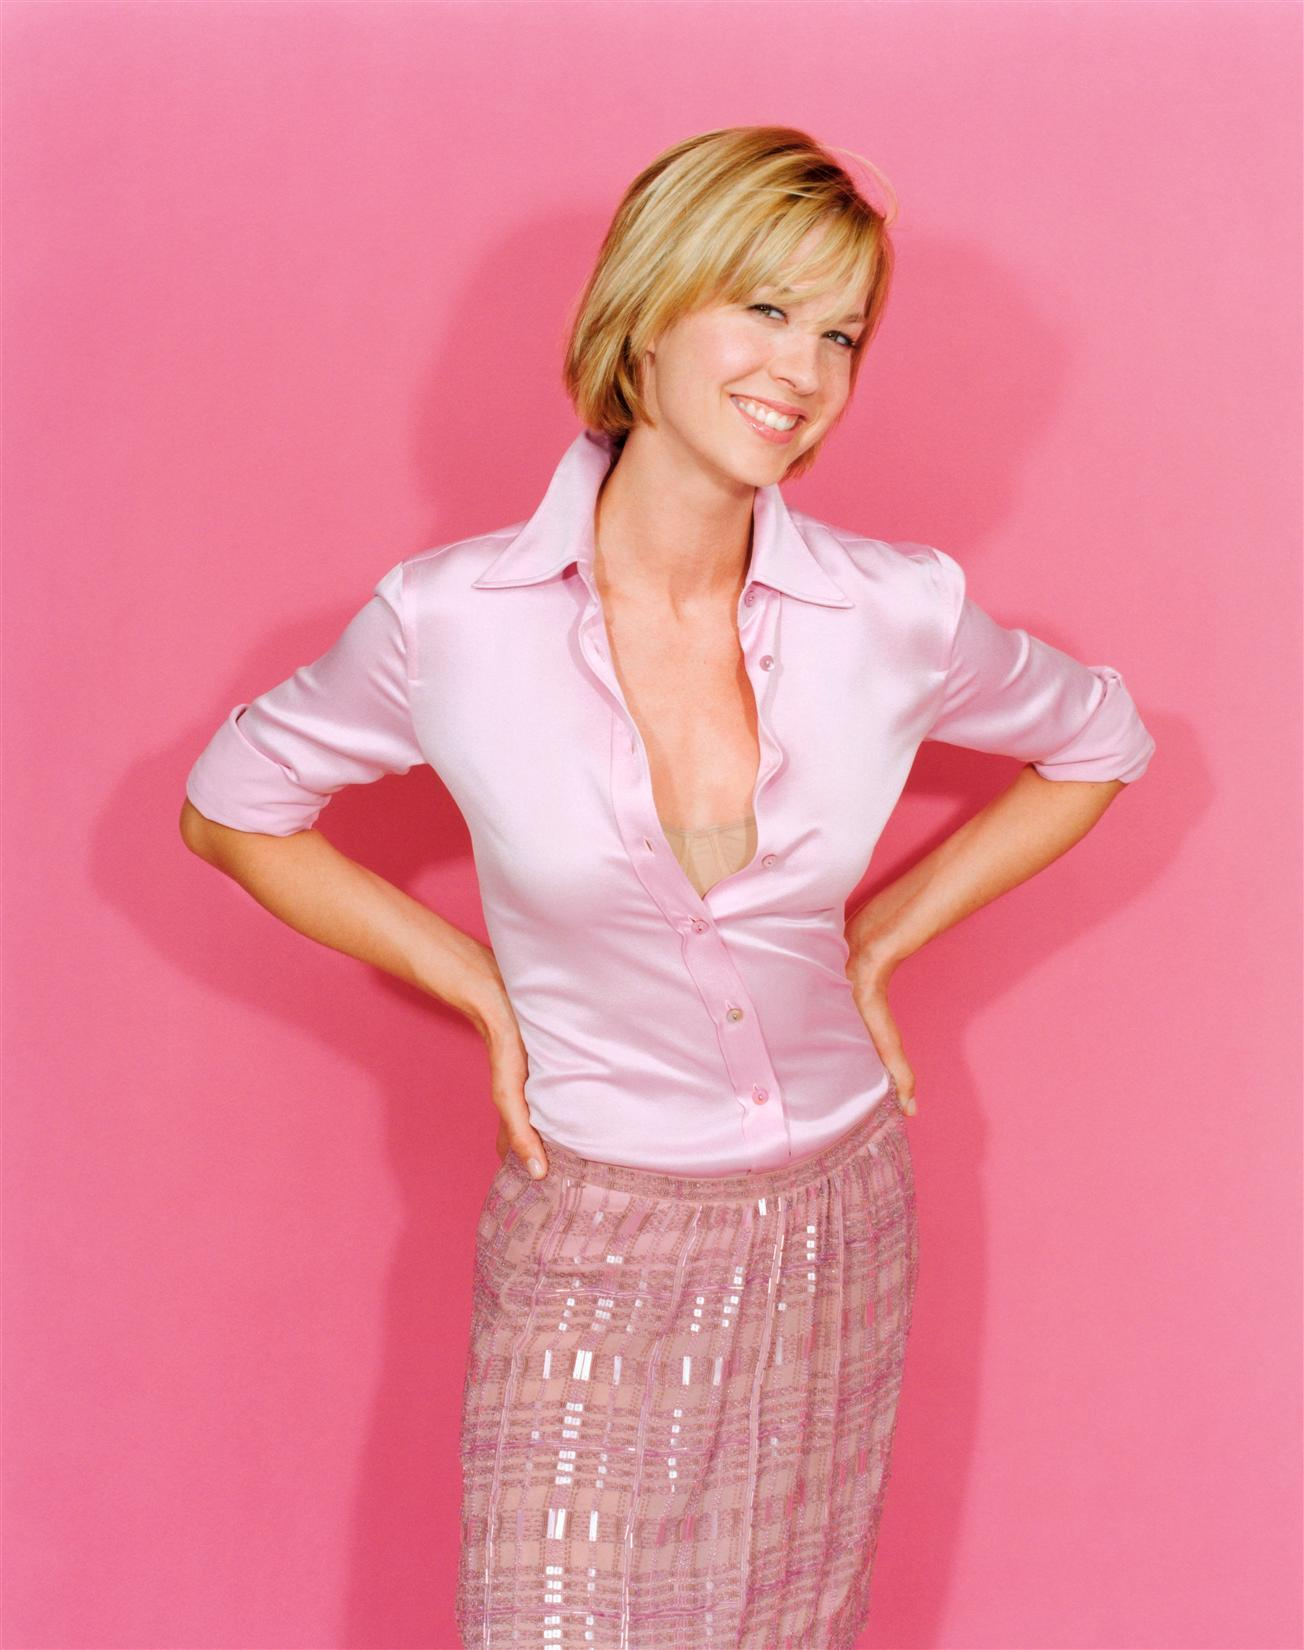 Jenna Elfman Images Jenna Elfman Hd Wallpaper And